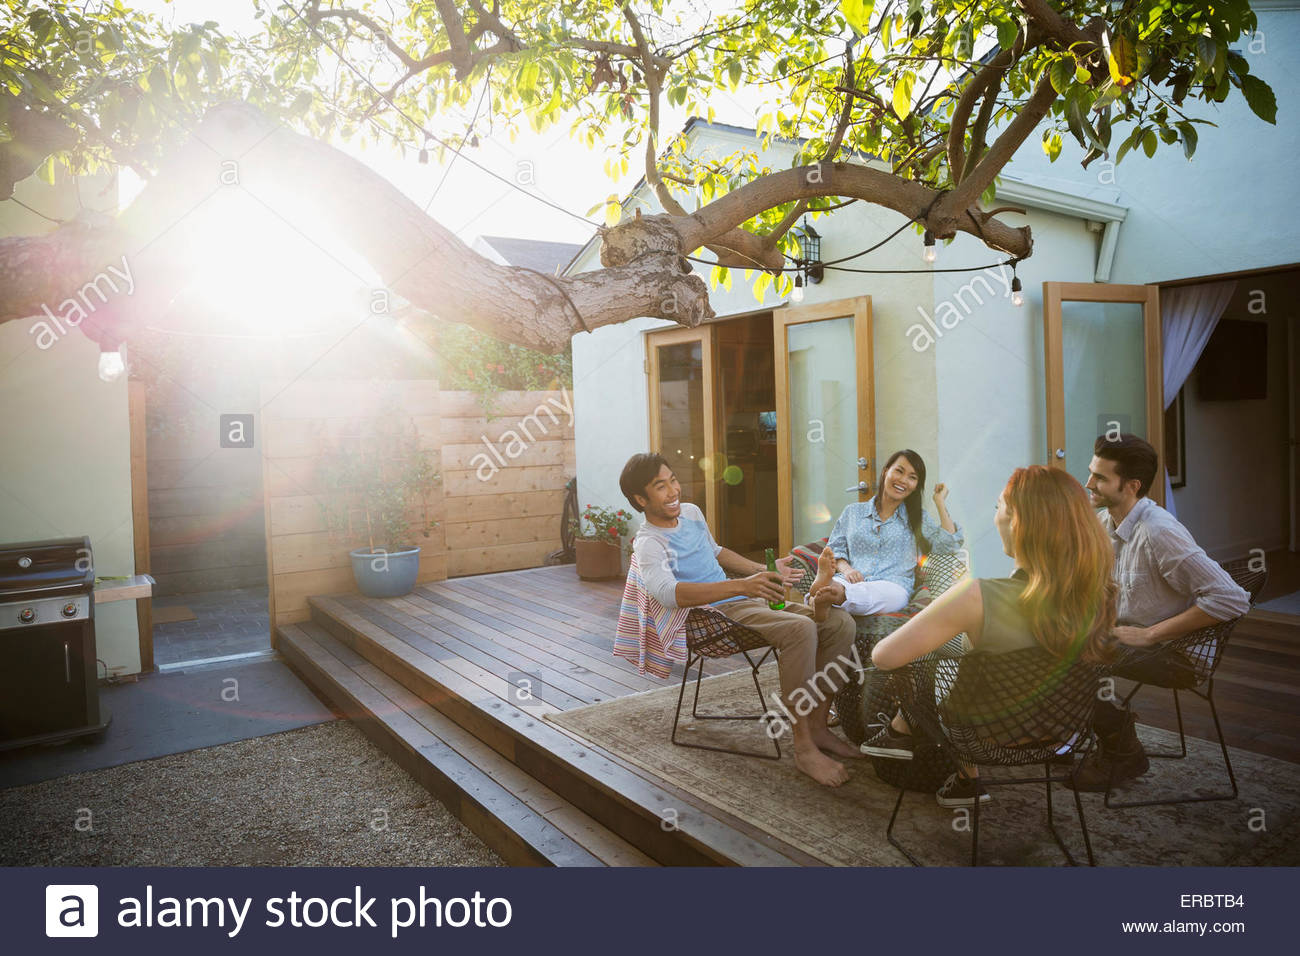 Friends drinking and talking on sunny patio - Stock Image